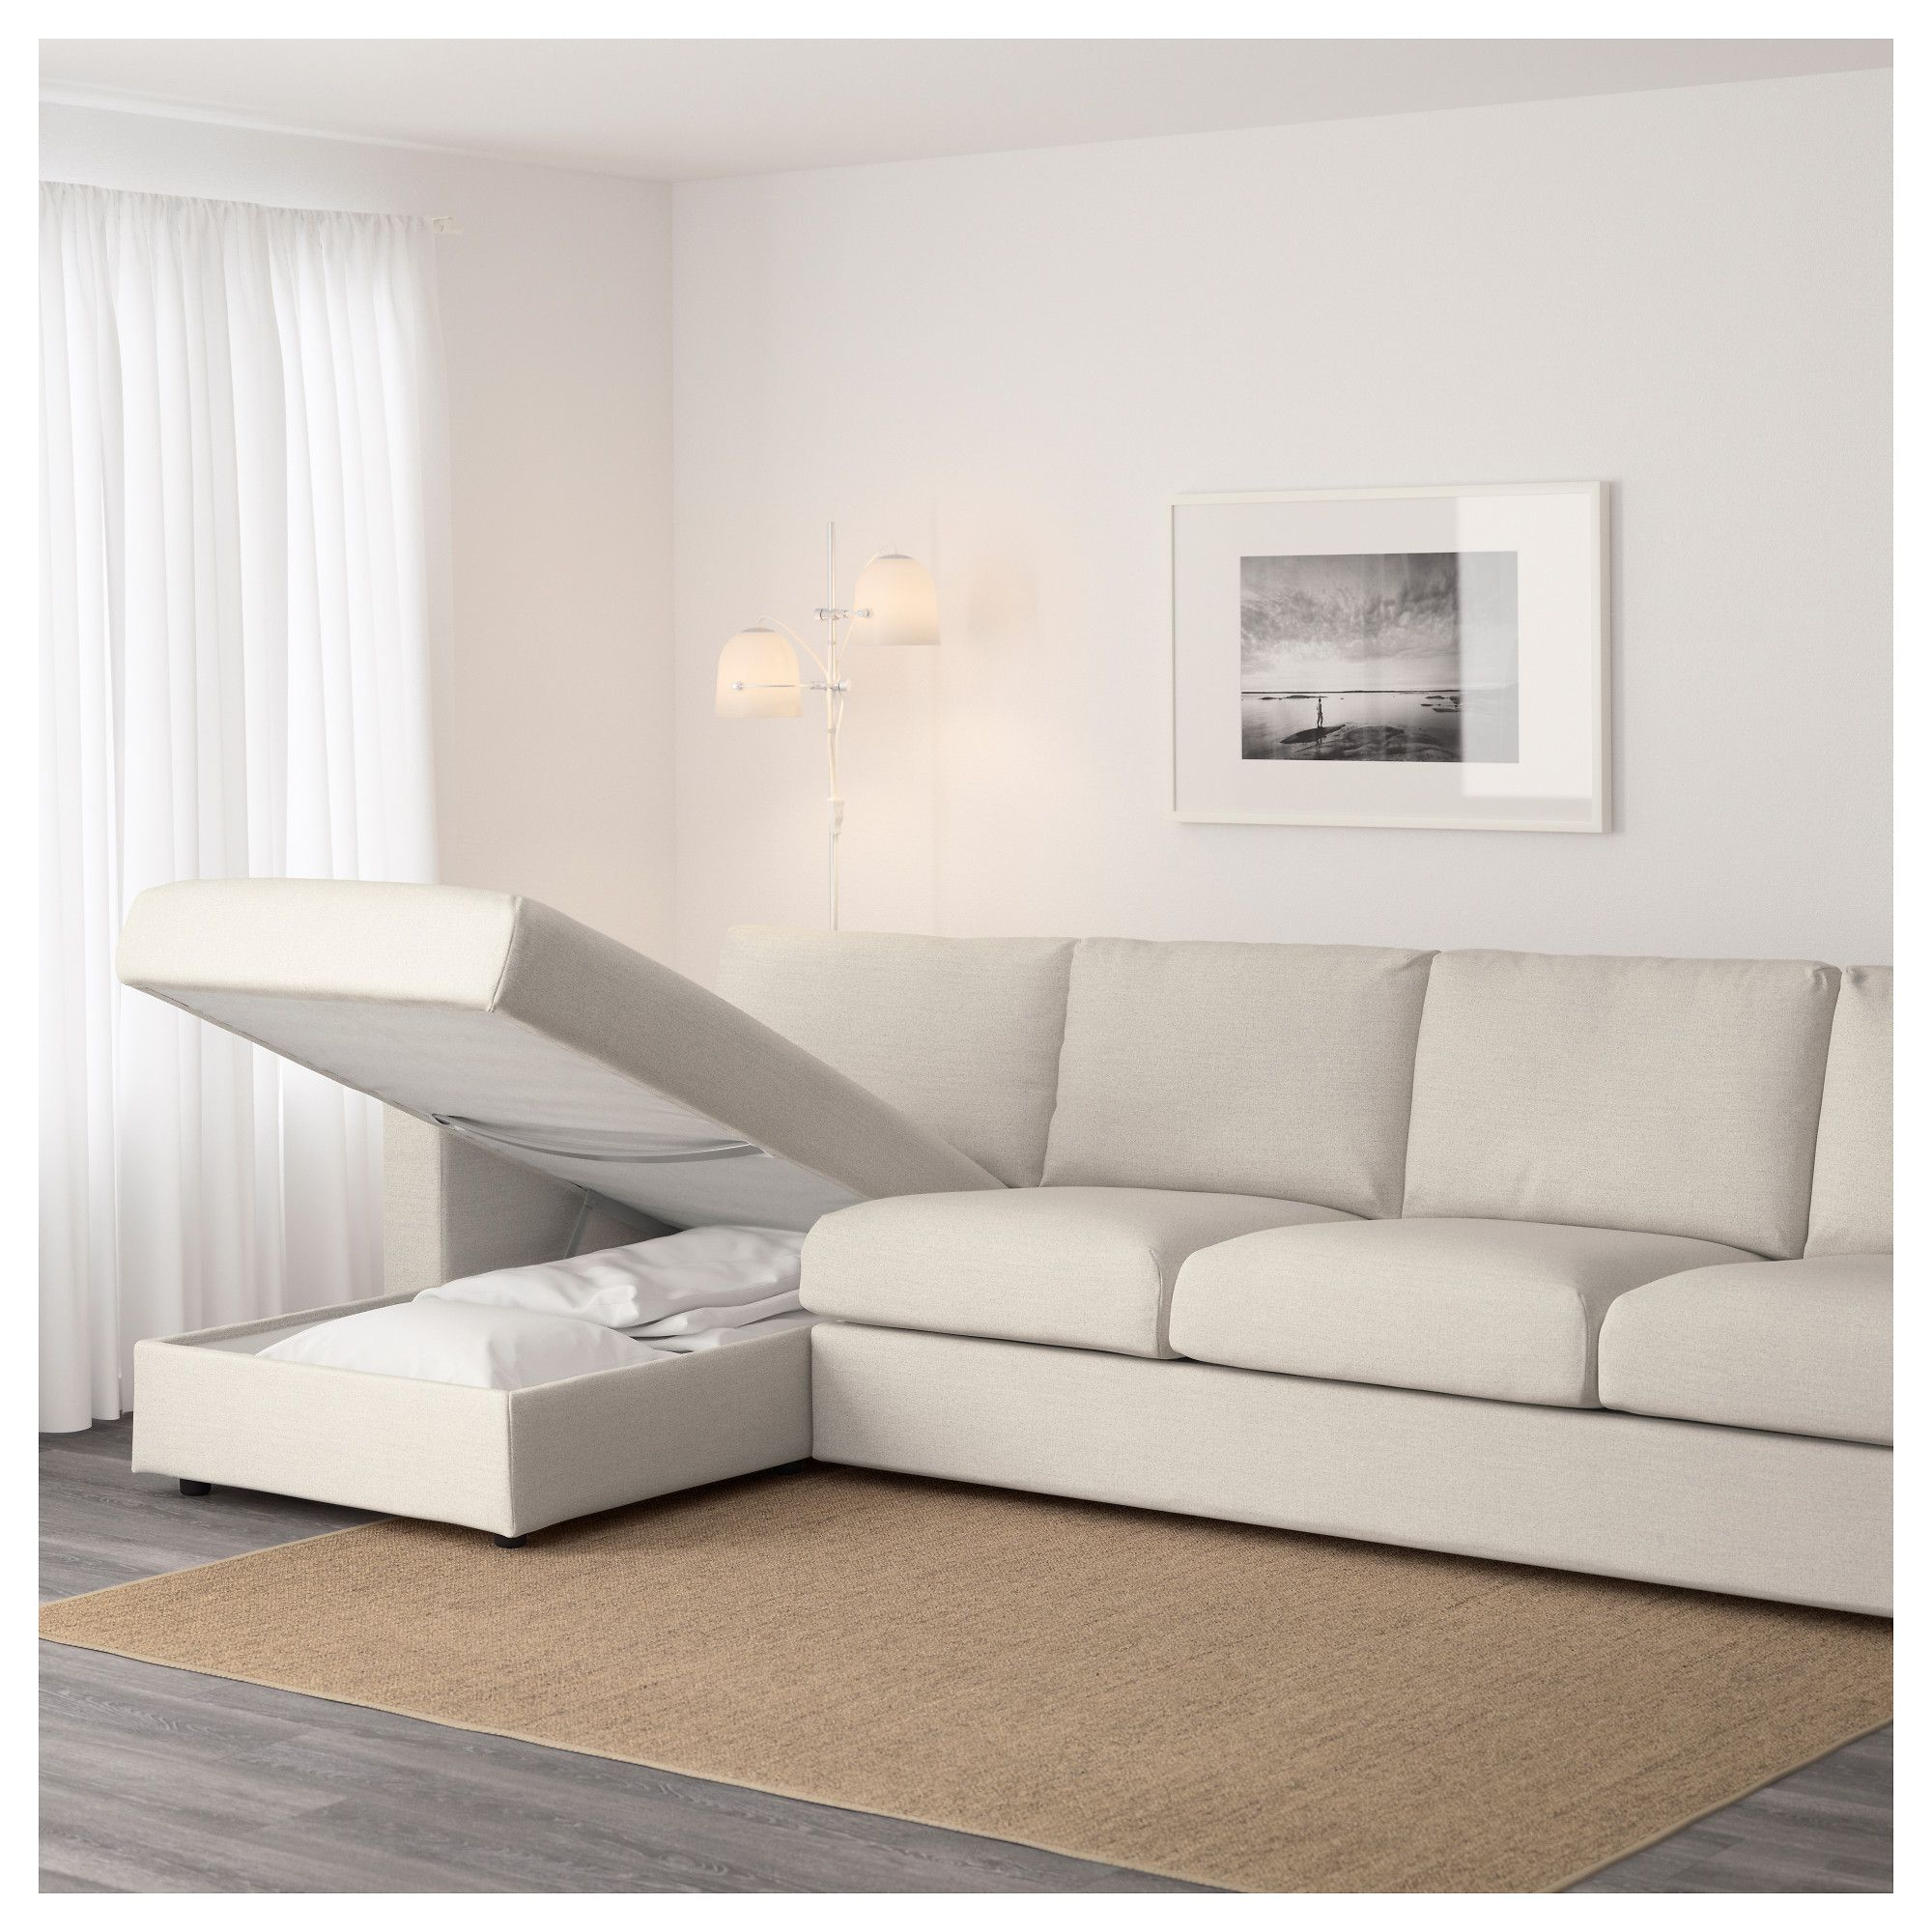 Ikea Sofa 4 Seater Ikea Vimle Sectional 4 Seat With Chaise Gunnared Beige